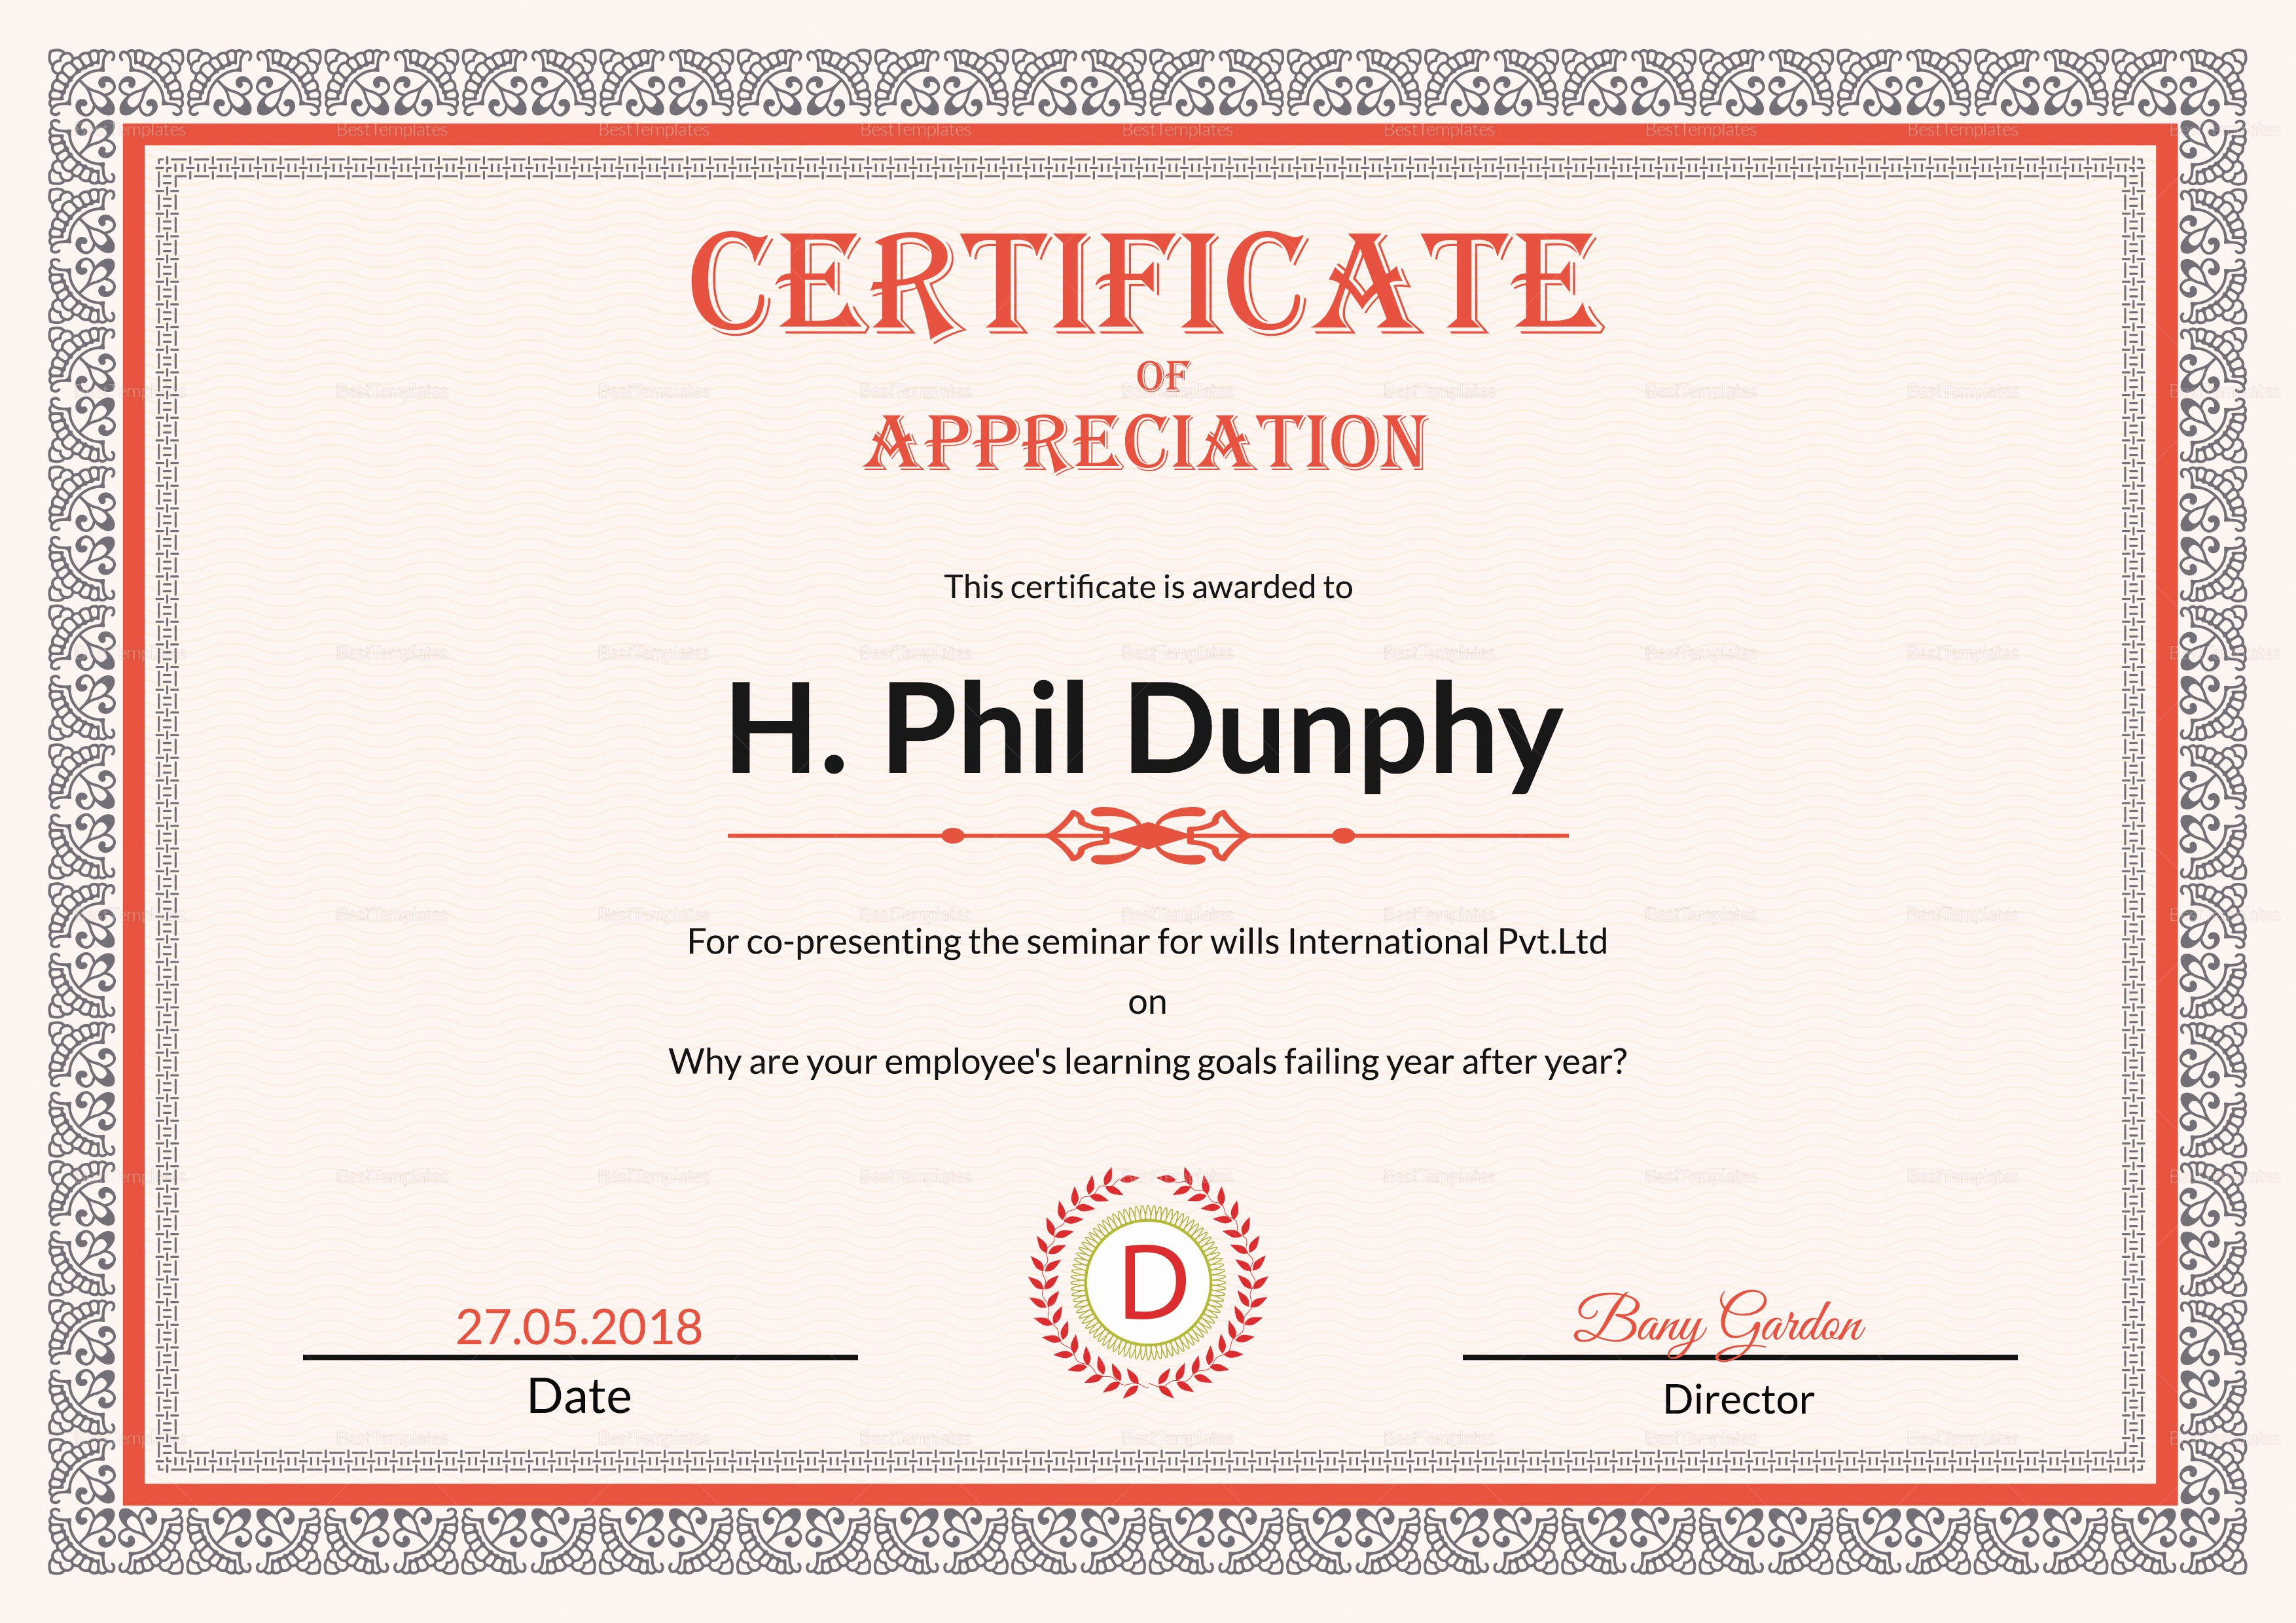 Appreciation Certificate Templates for Word New Certificate Of Appreciation Design Template In Psd Word